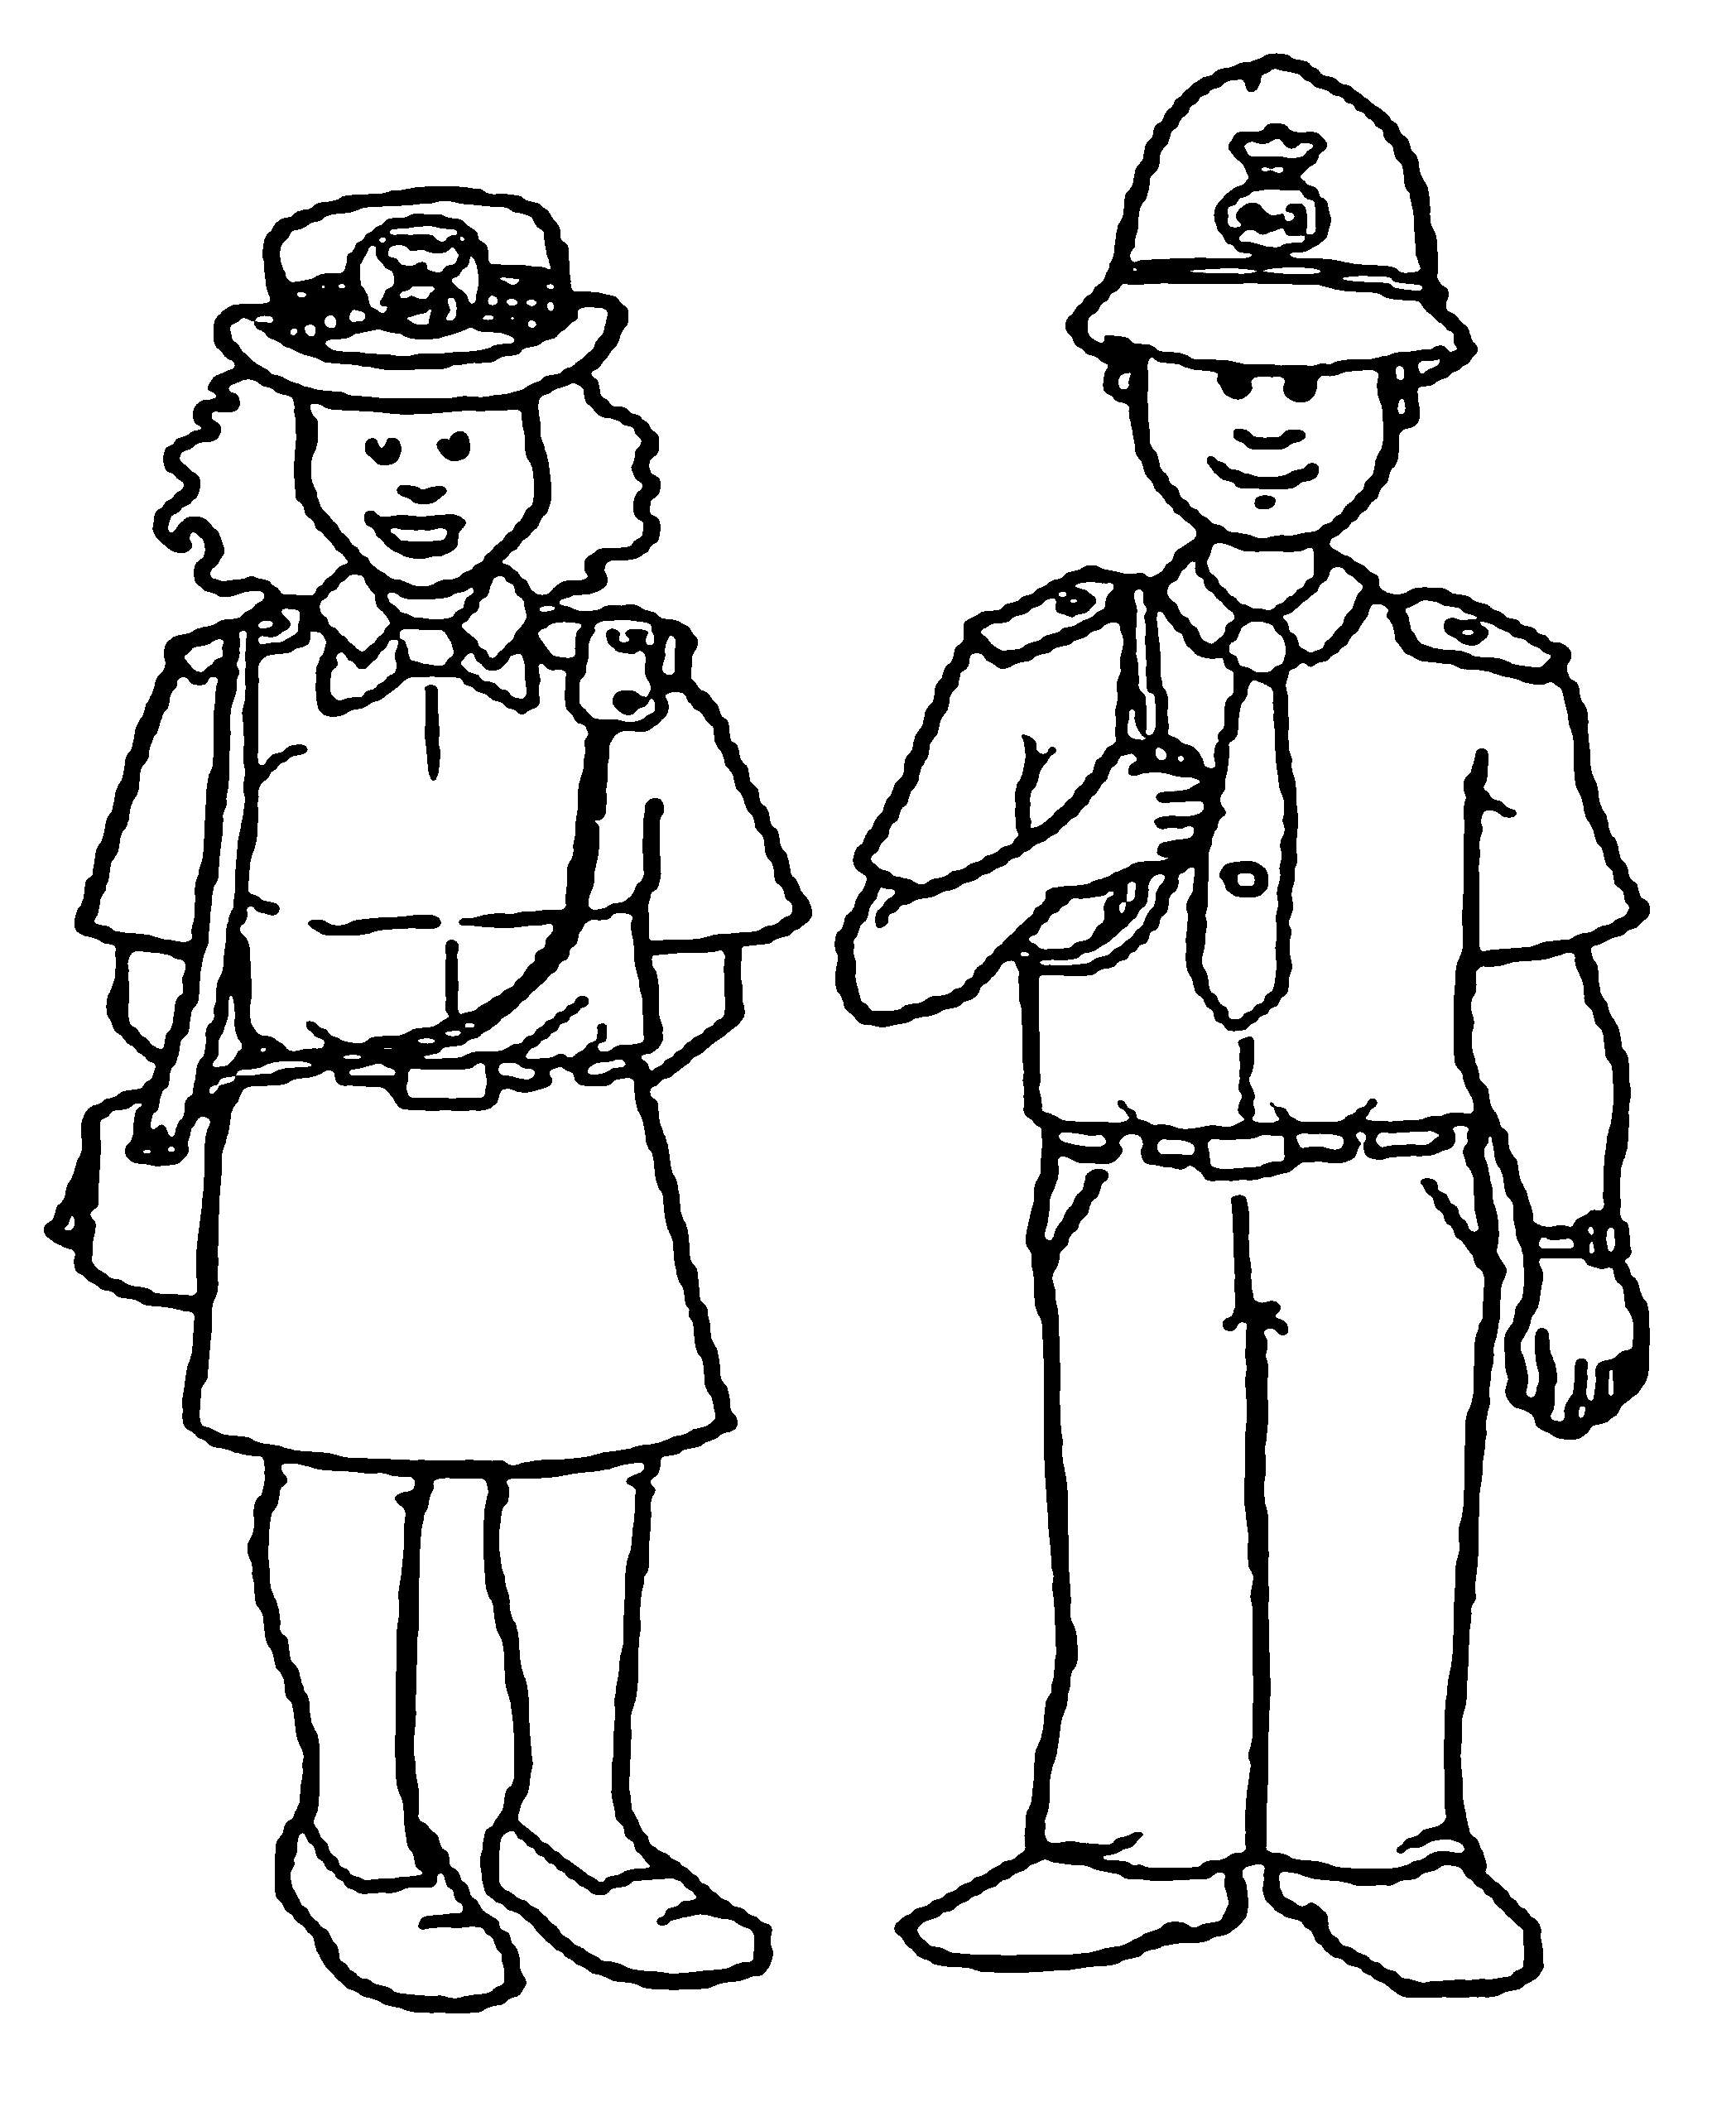 childs coloring pages about police - photo#2